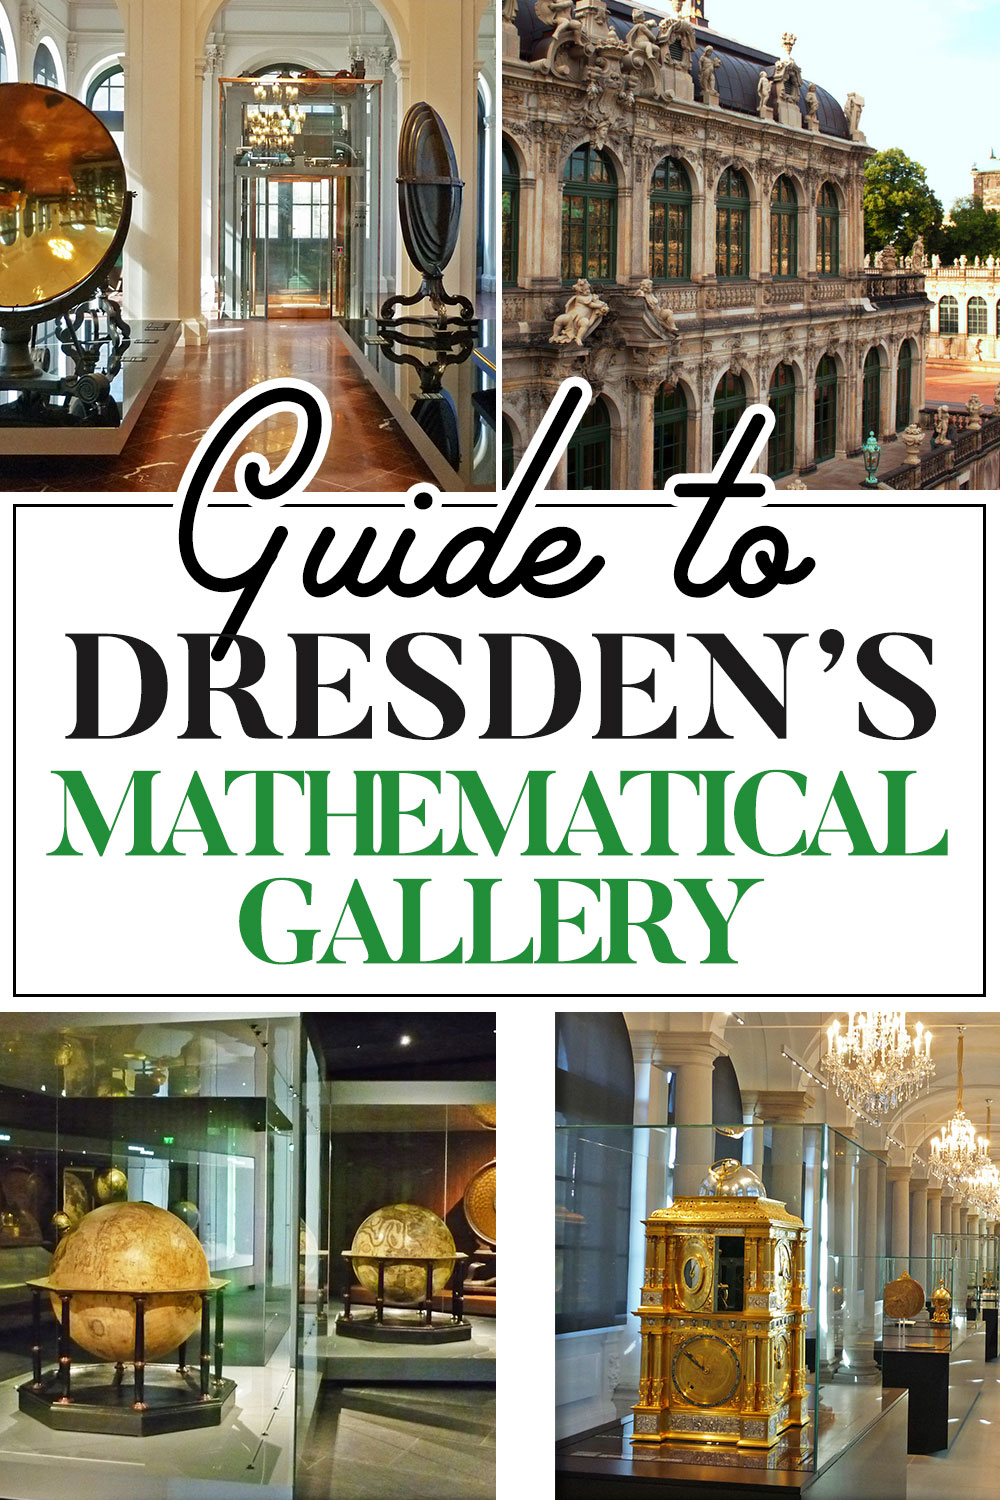 Exploring Dresden's Mathematical Gallery